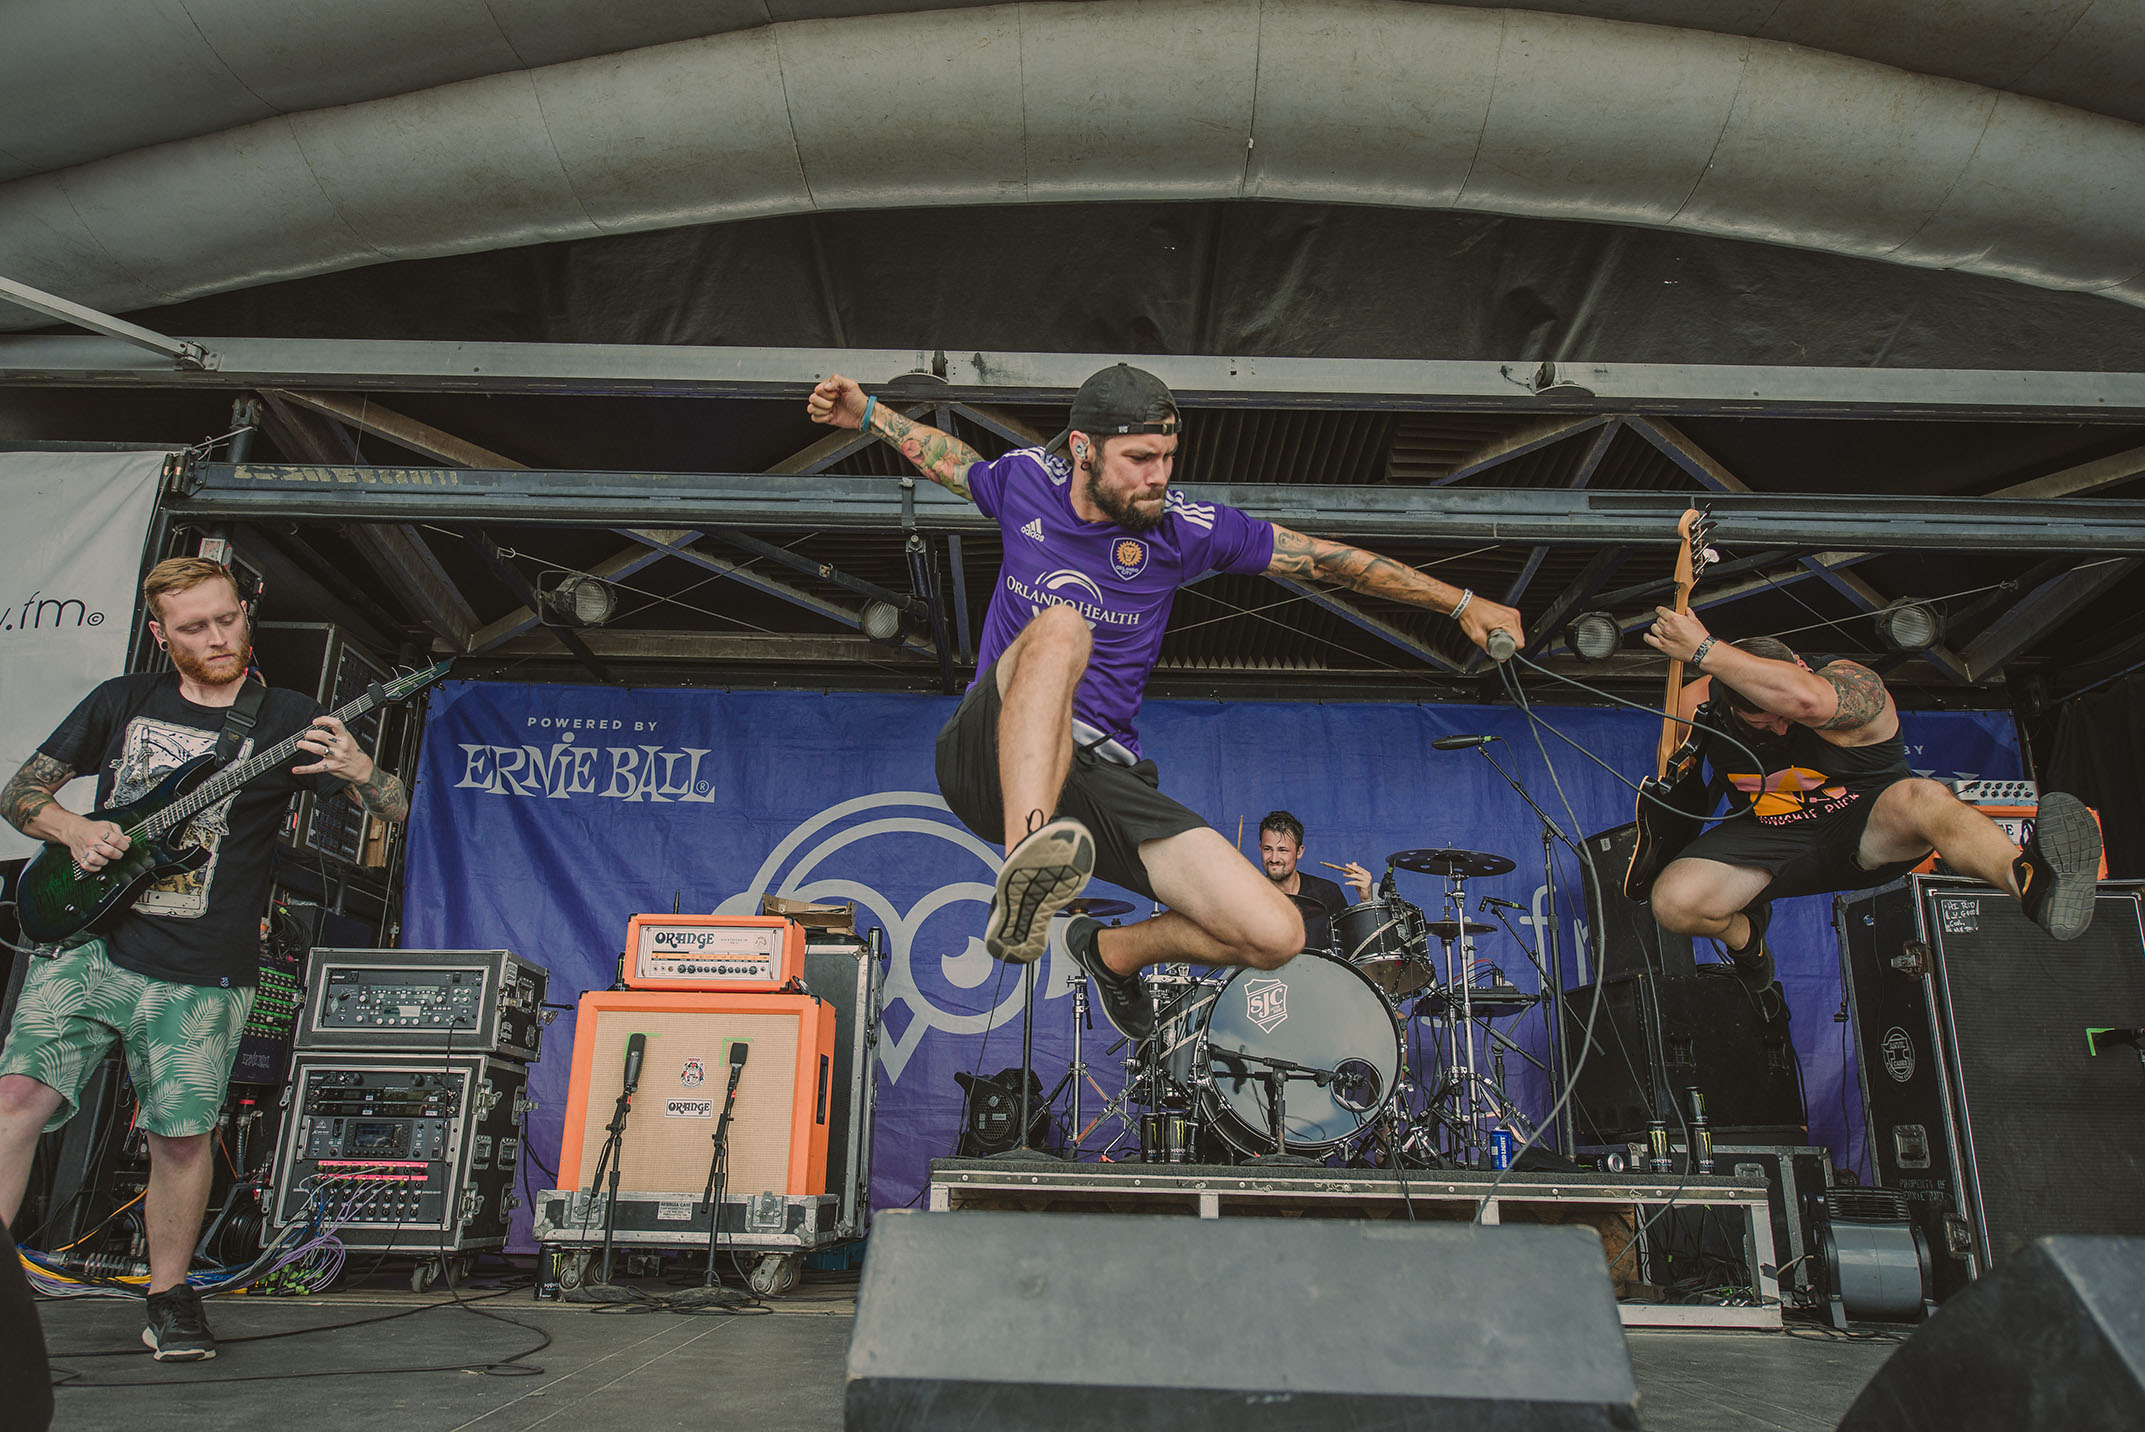 capstan anthony demario boz andrew bozymowski joe mabry scott fischer warped tour jumping band concert rock photo photography image